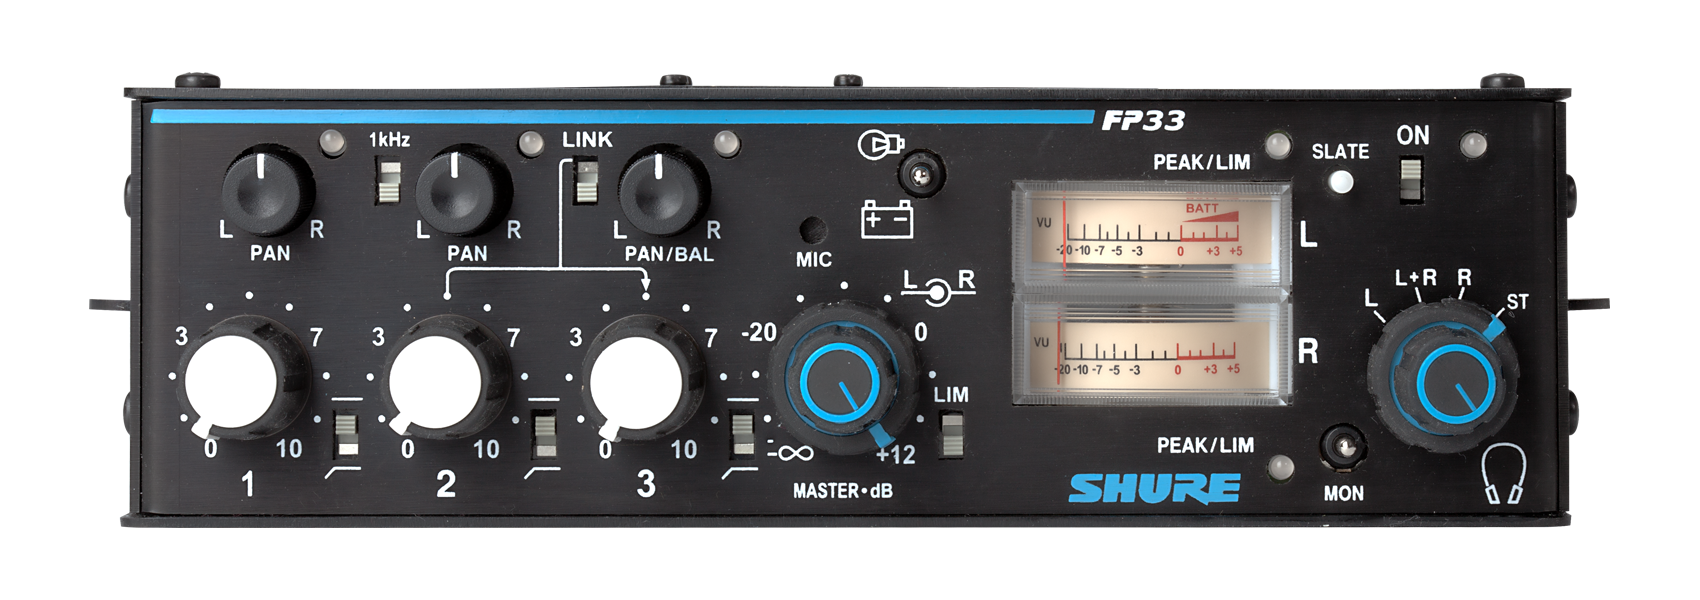 Illustration Shure FP33 Stereo ENG Mixer